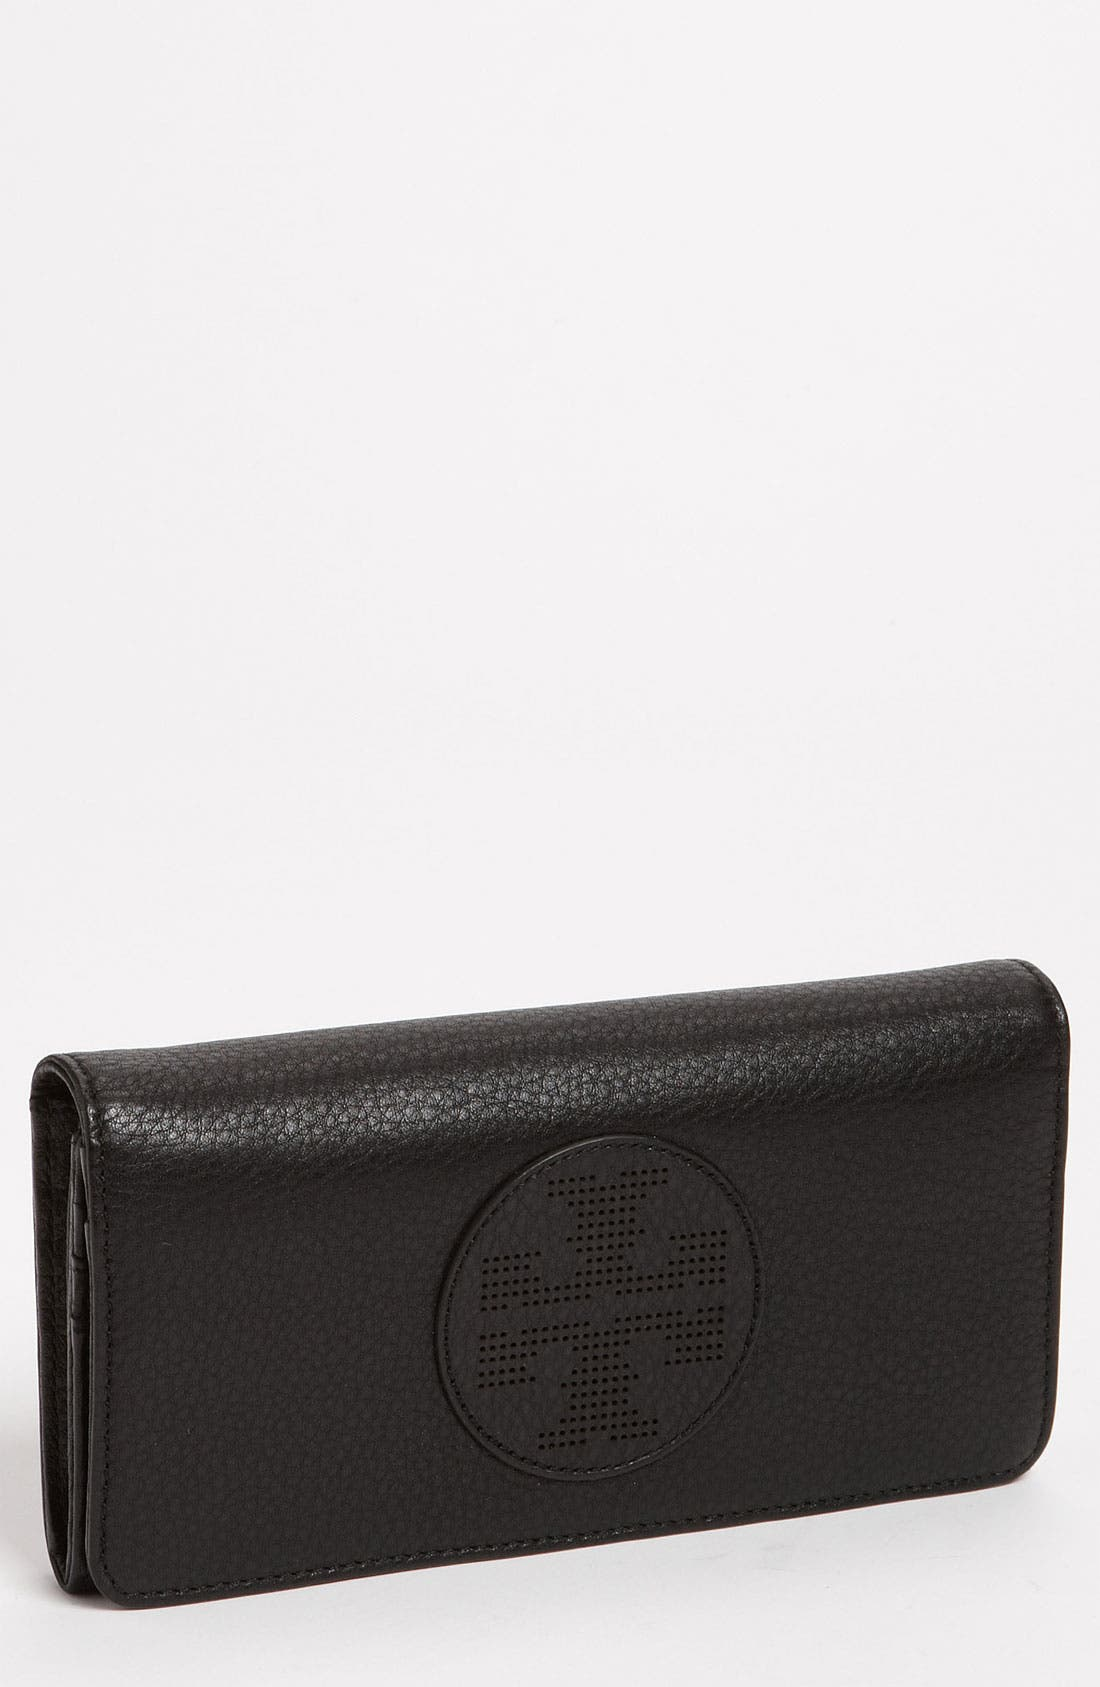 Main Image - Tory Burch 'Kipp' Envelope Wallet